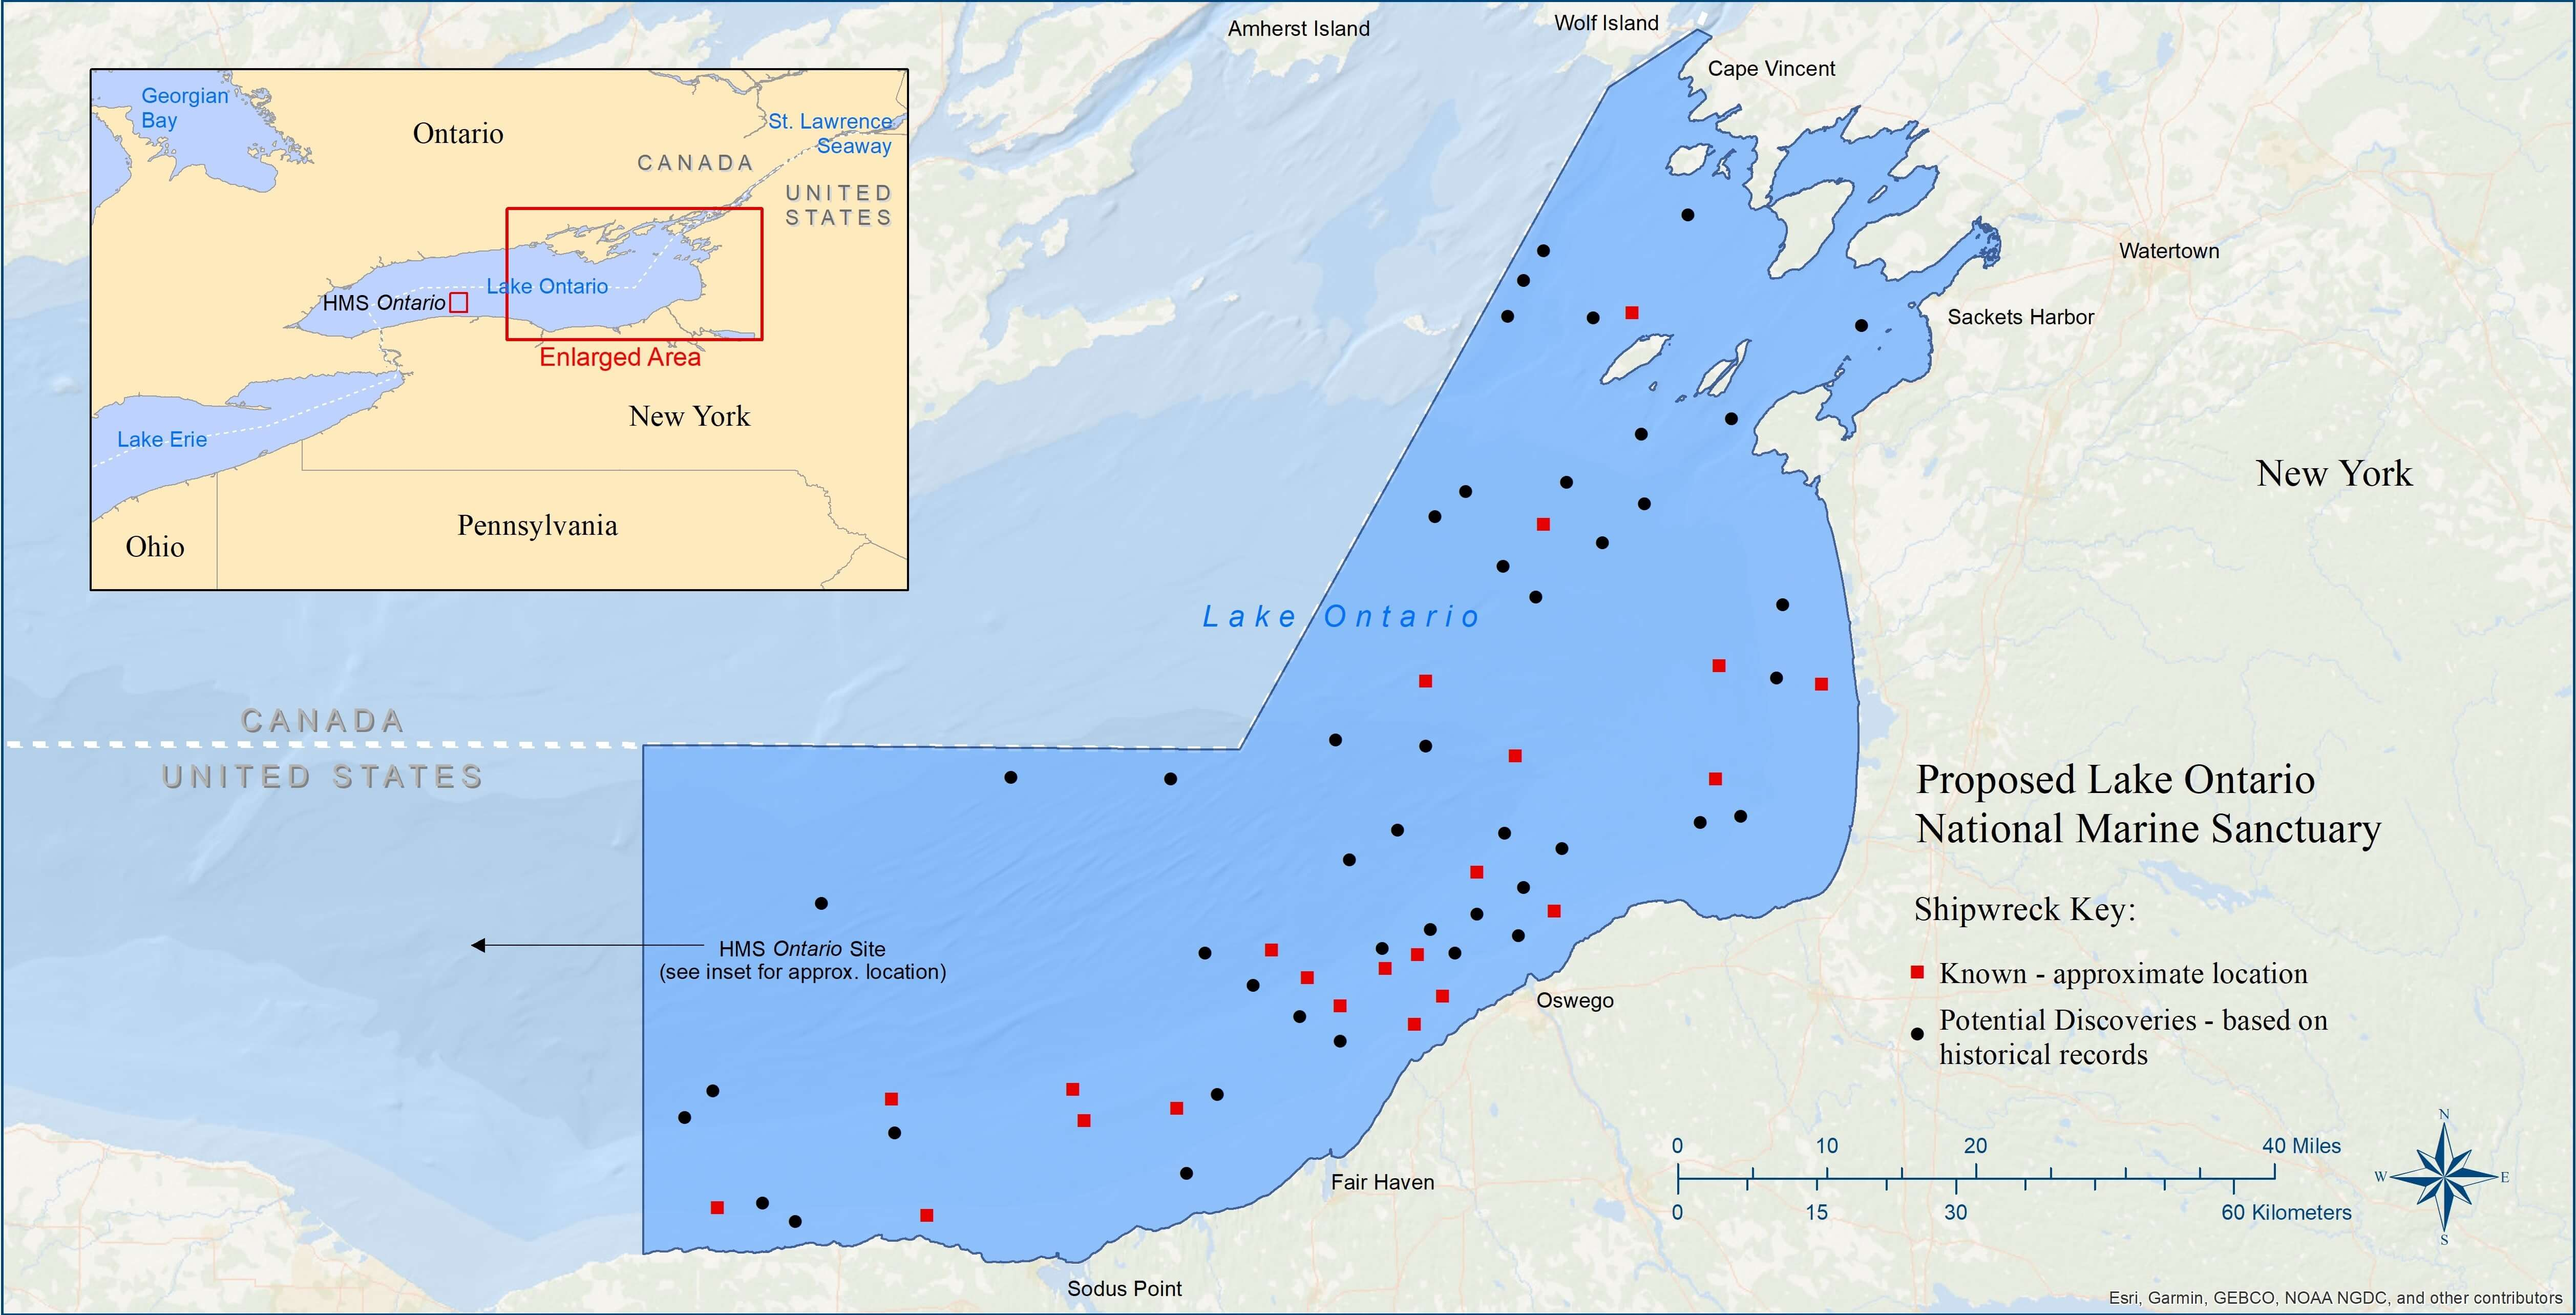 NOAA seeks public comment on proposed national marine sanctuary in on